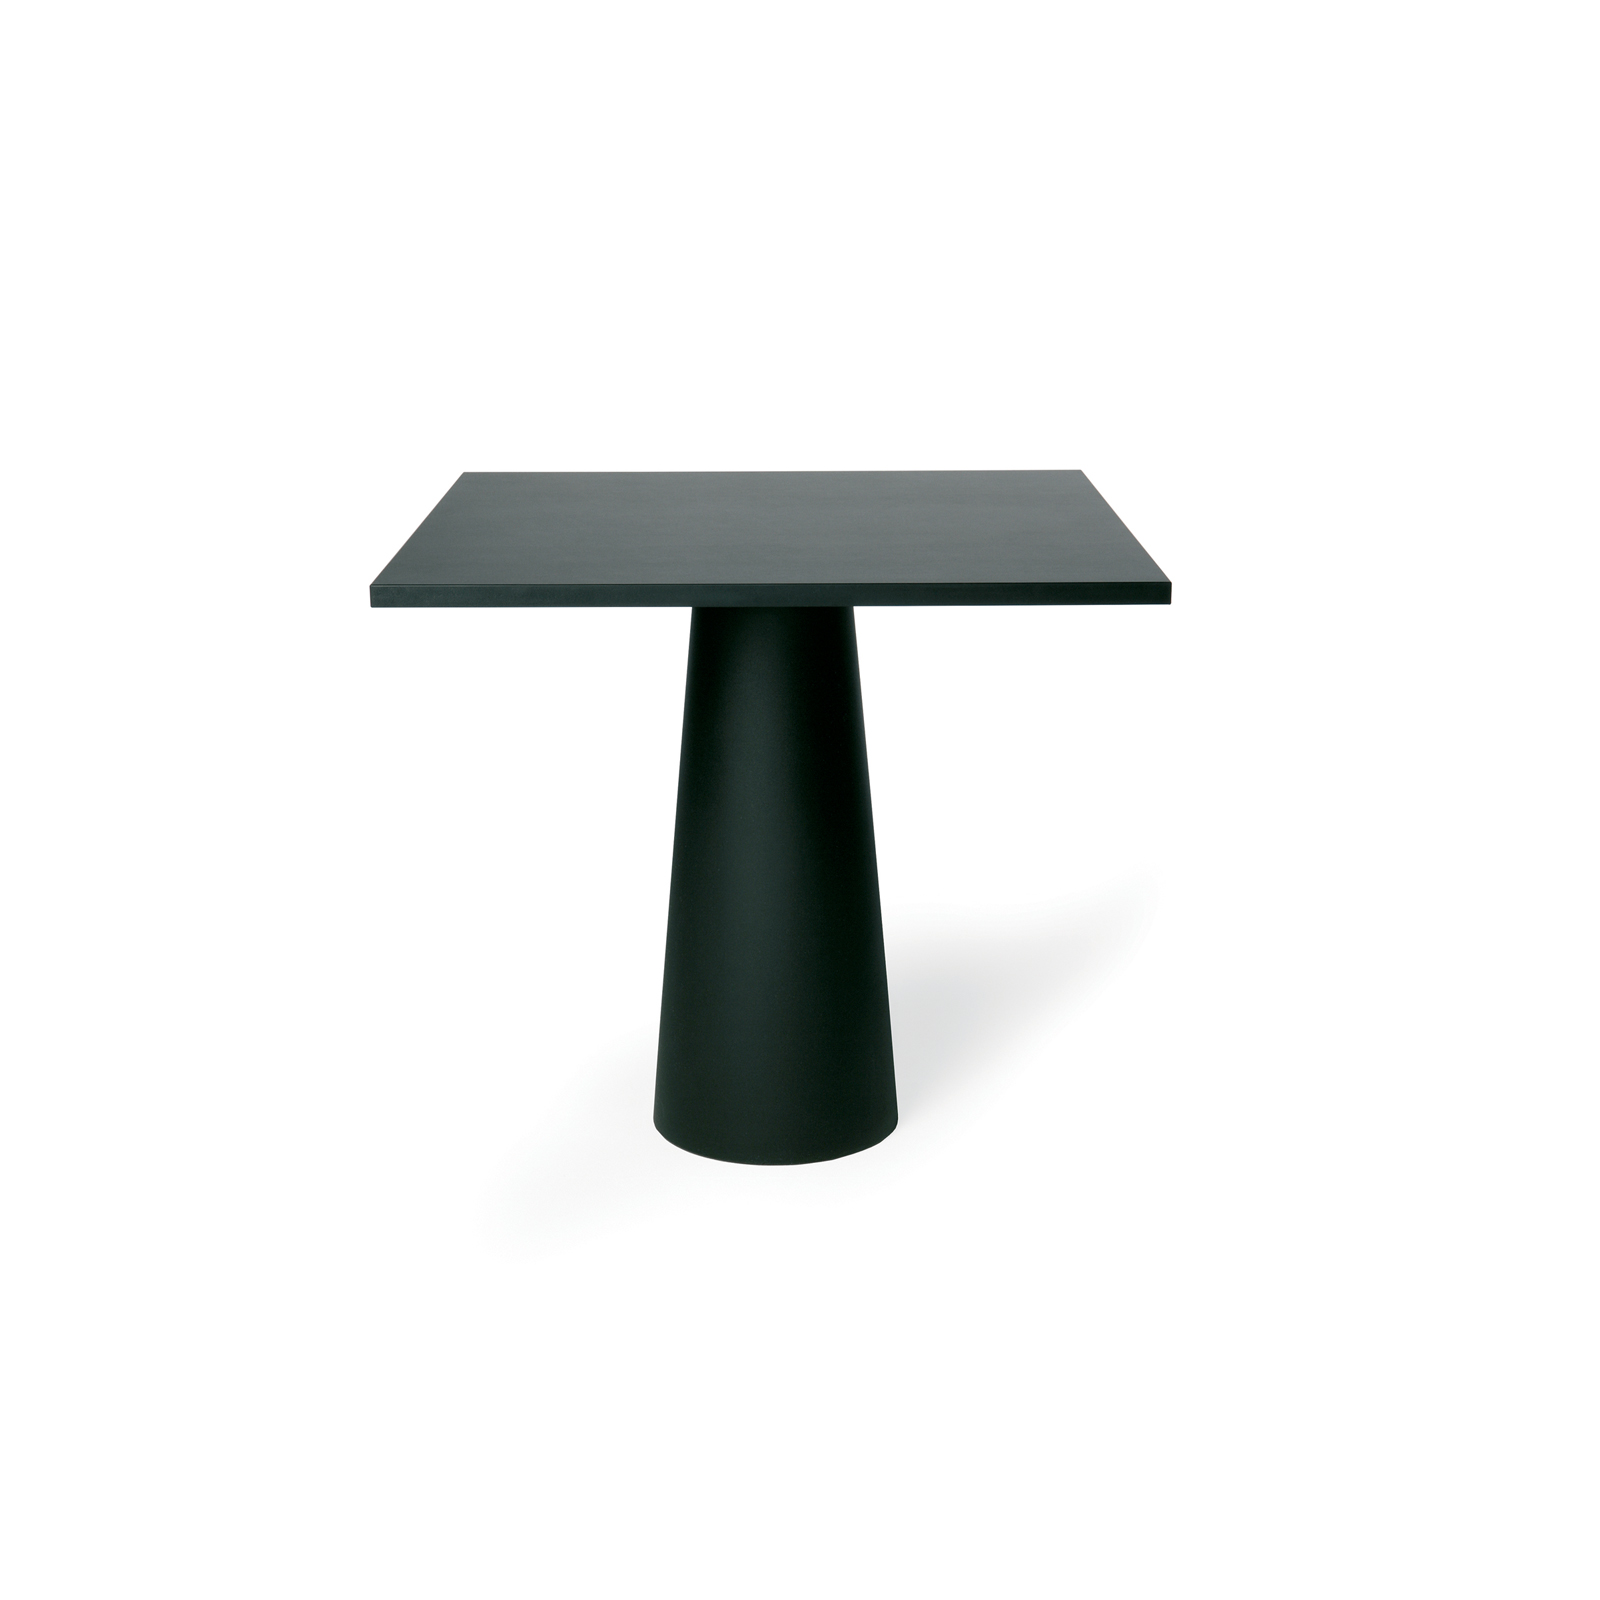 Whether you're planning an intimate tete-a-tete with a friend or just trying to sit down to a civilzed meal in a cramped space, sometimes you need a tinier table. Rather than tempting fate by balancing that hot udon on your lap, take a gander at our round